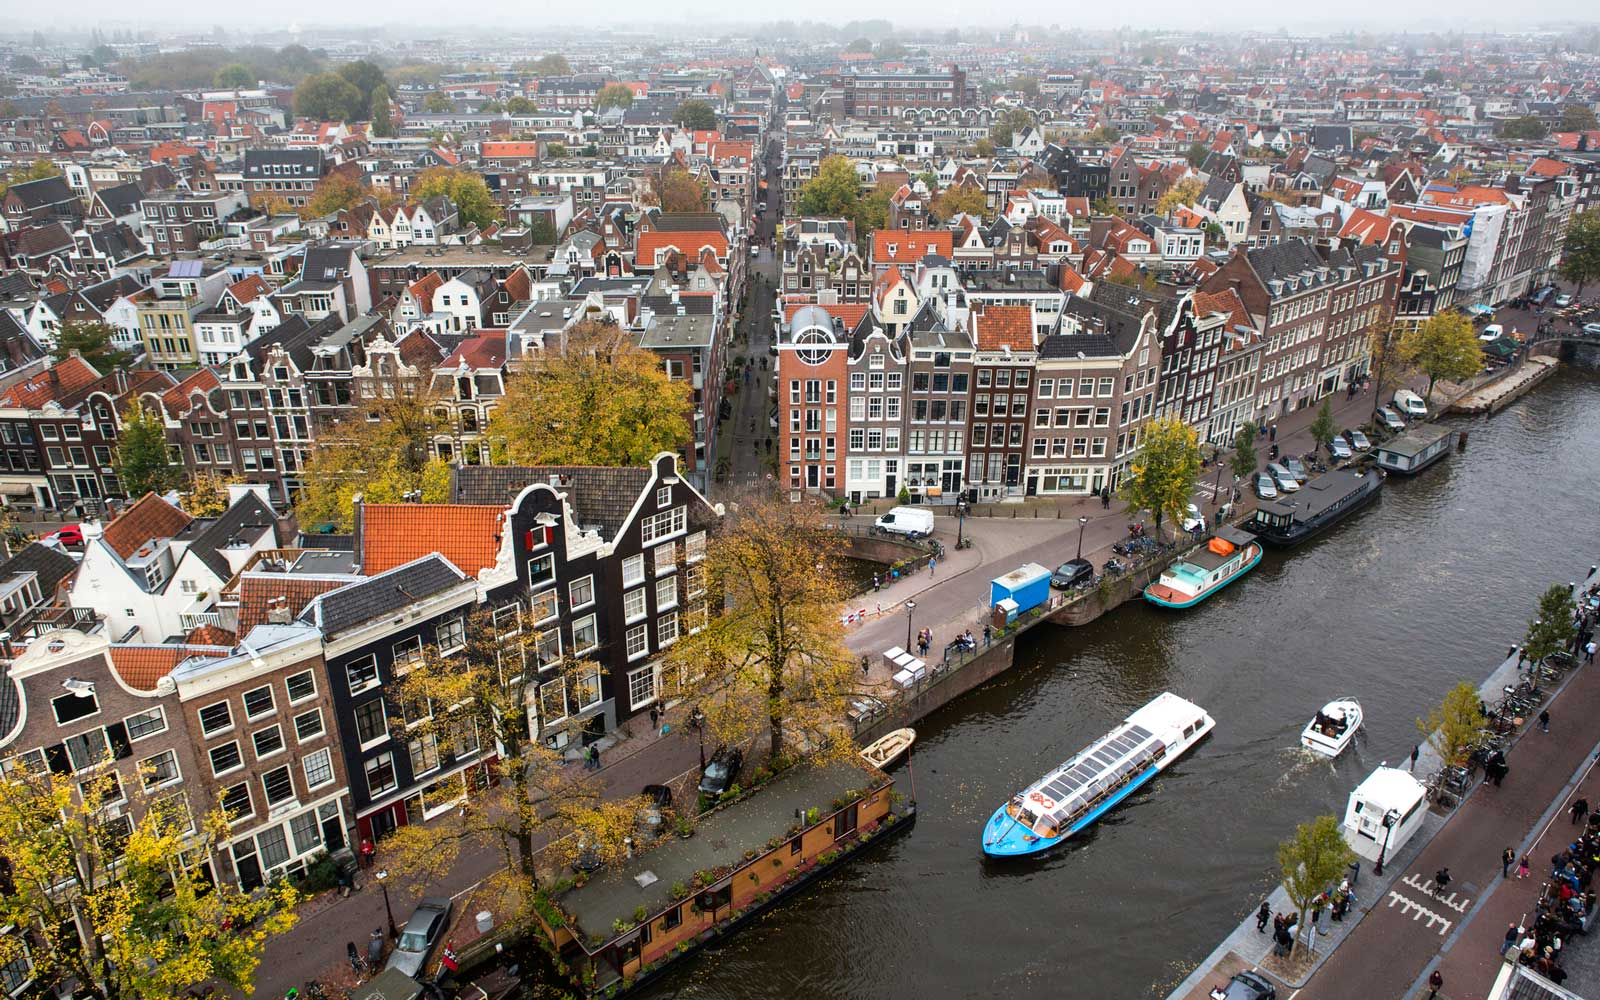 A view across the Dutch capital city of Amsterdam